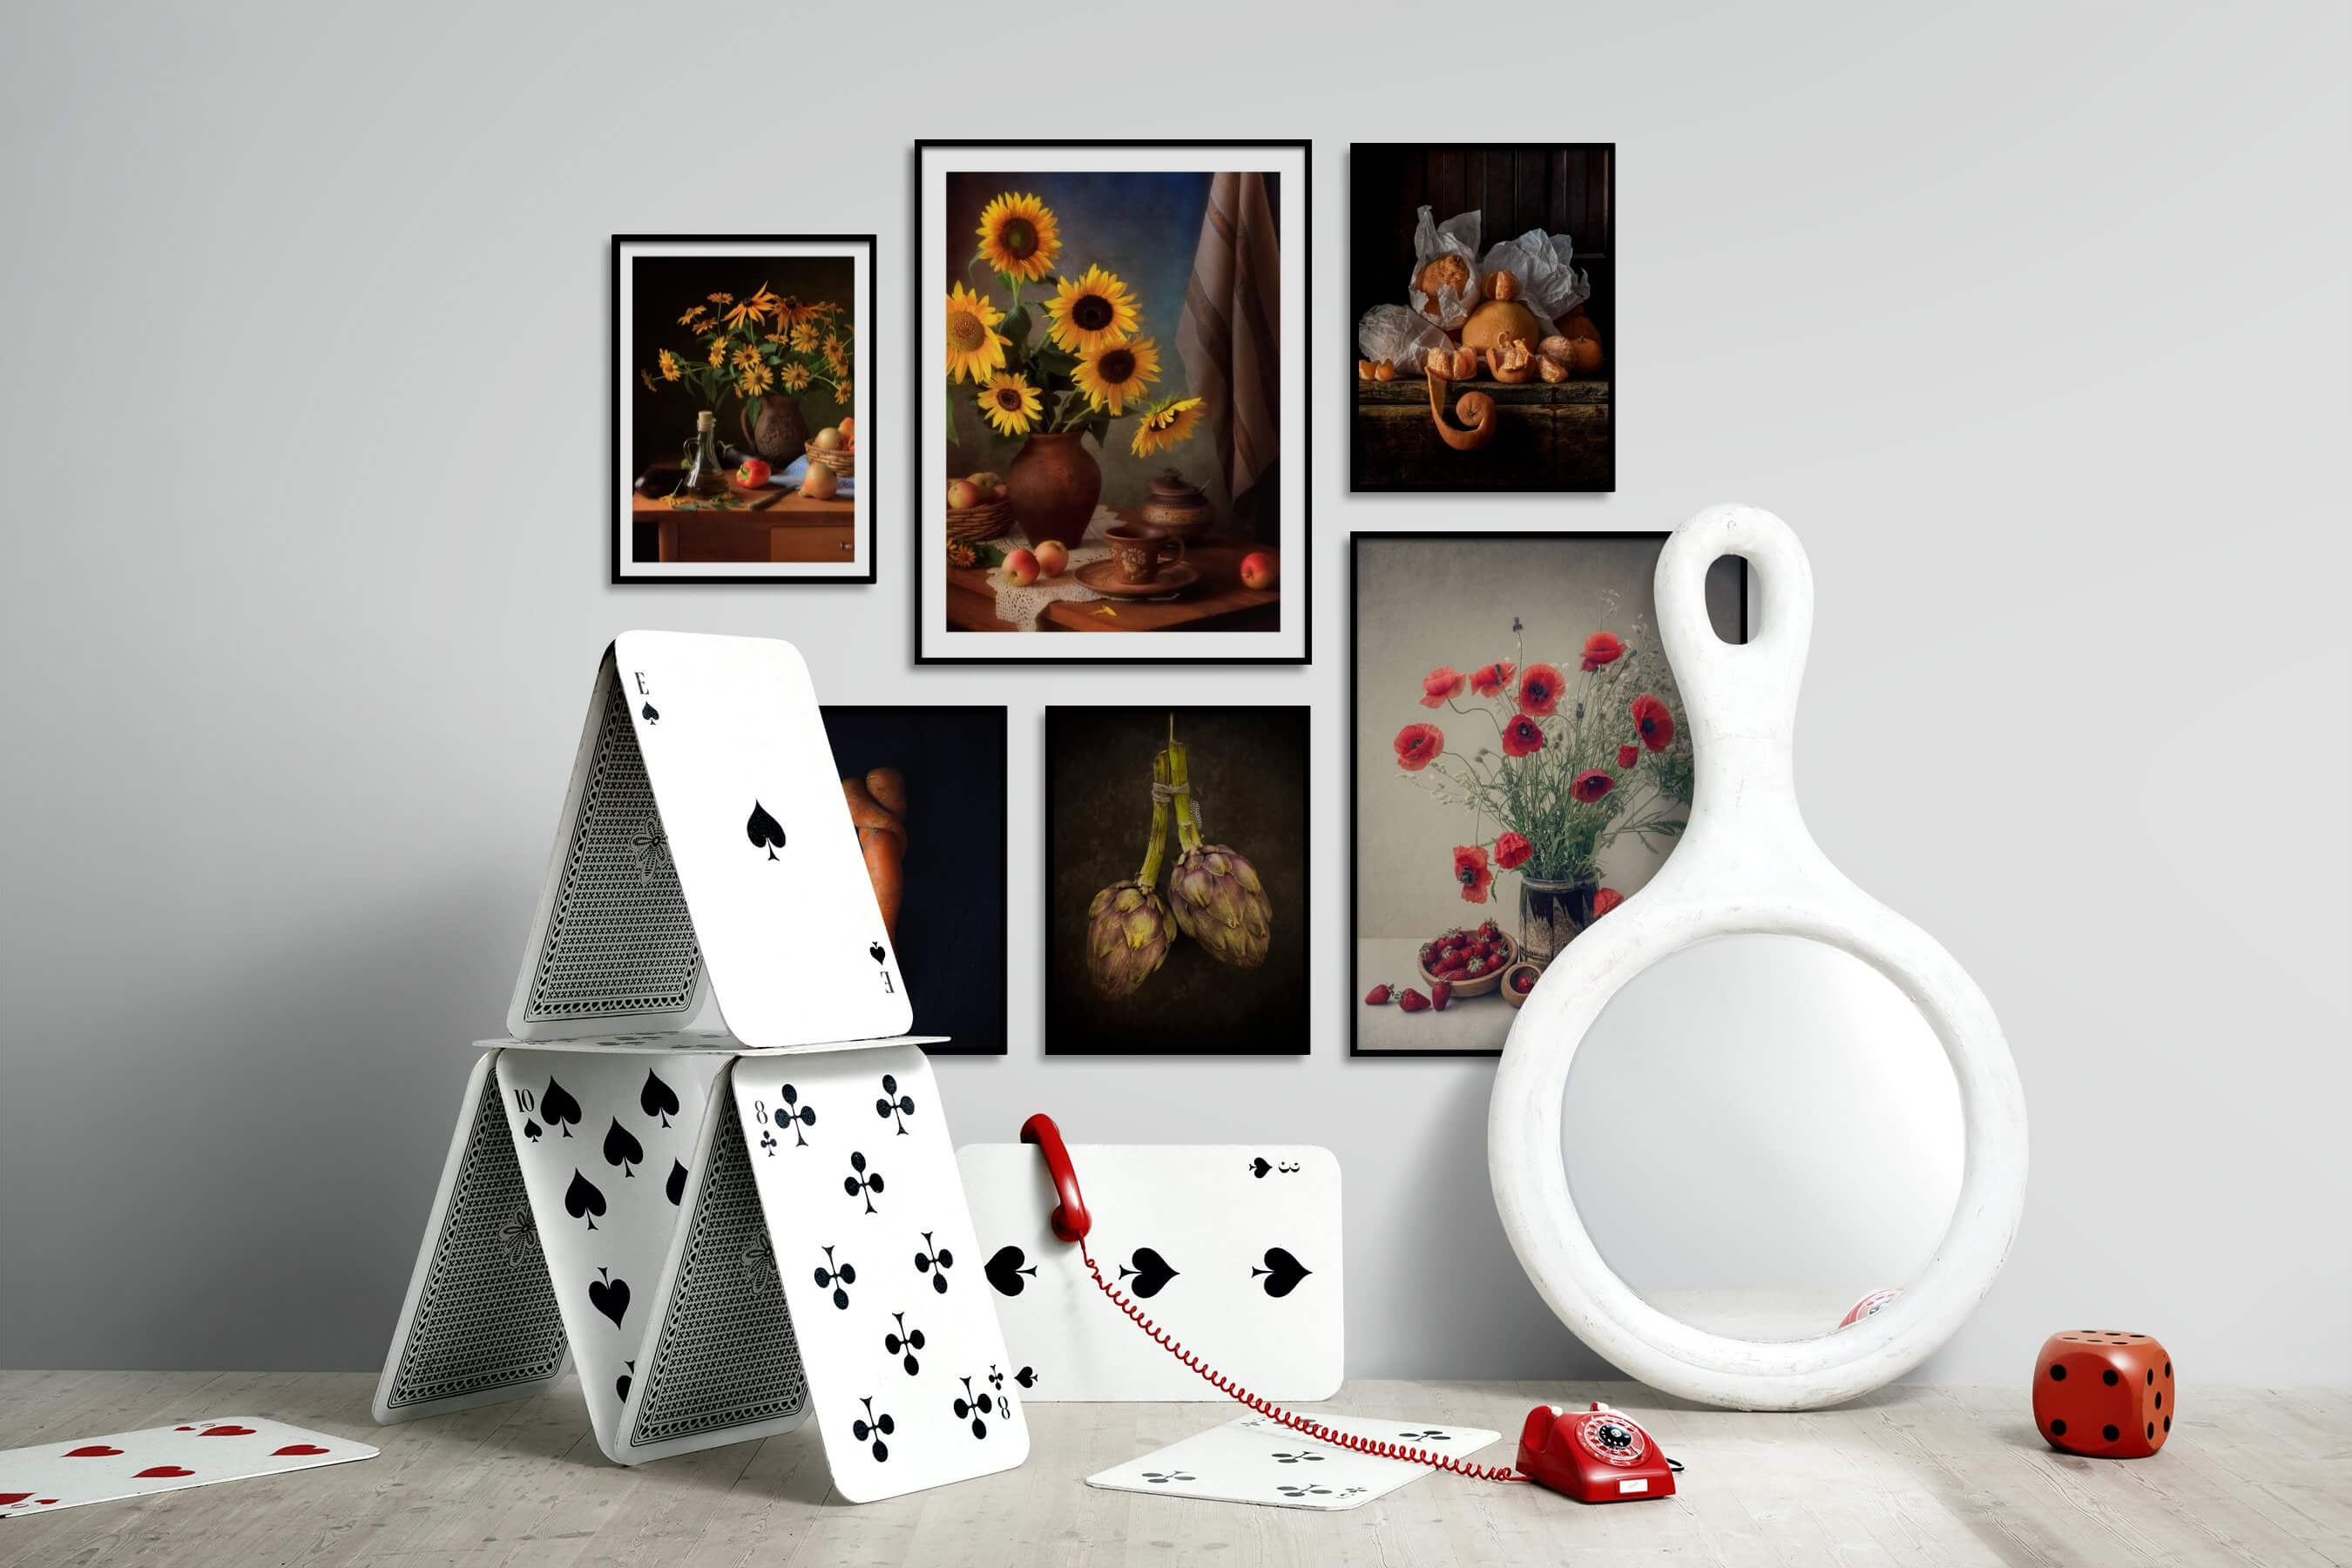 Gallery wall idea with six framed pictures arranged on a wall depicting Flowers & Plants, Vintage, Dark Tones, For the Minimalist, and For the Moderate